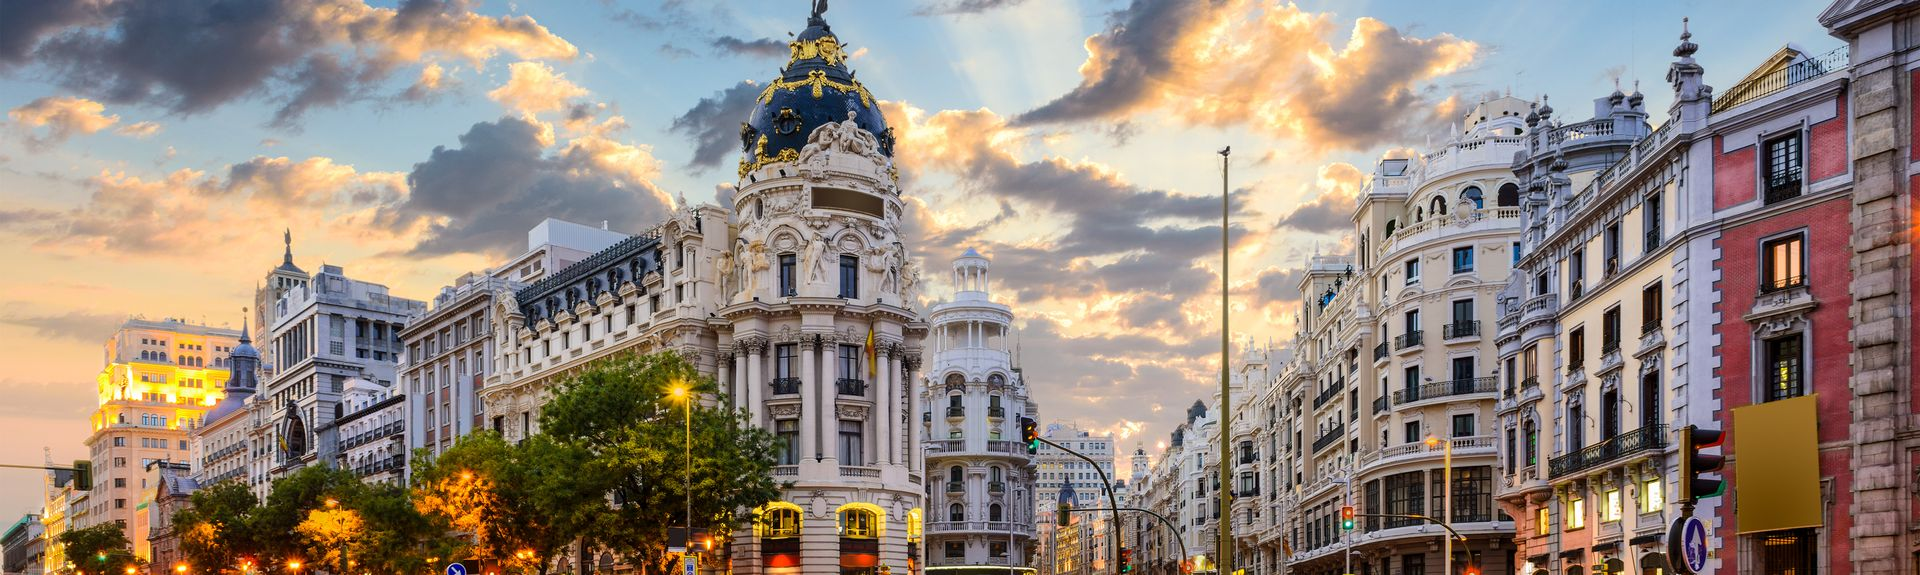 Madrid, Community of Madrid, Spain